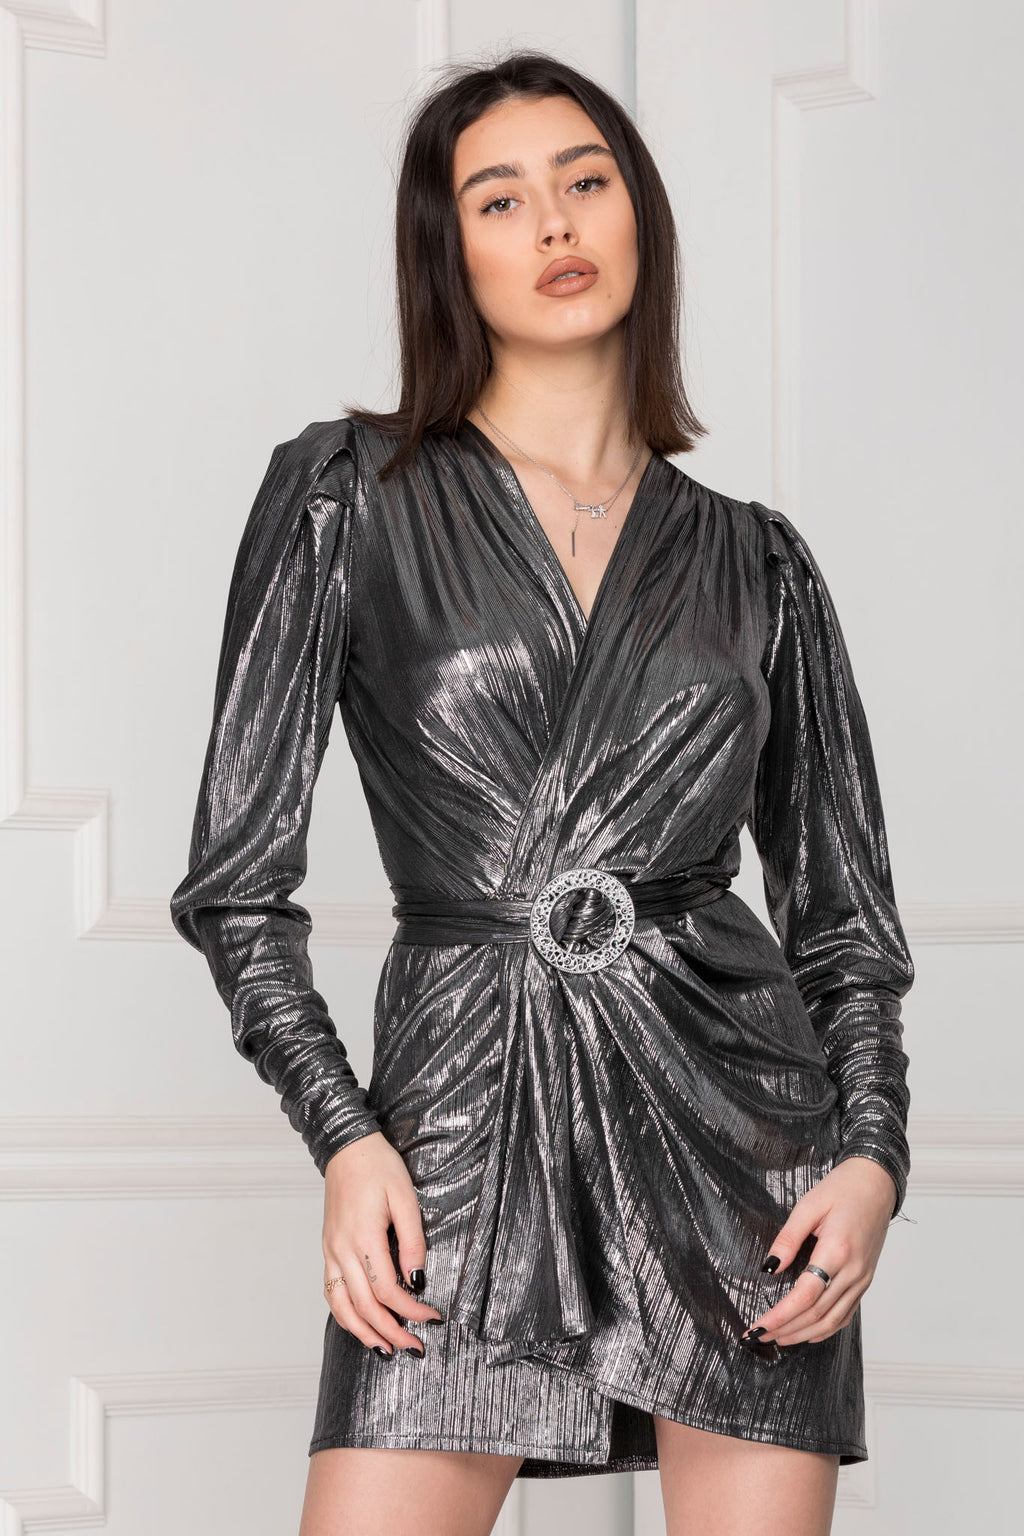 Sia Lurex Party Dress cool for night parties.